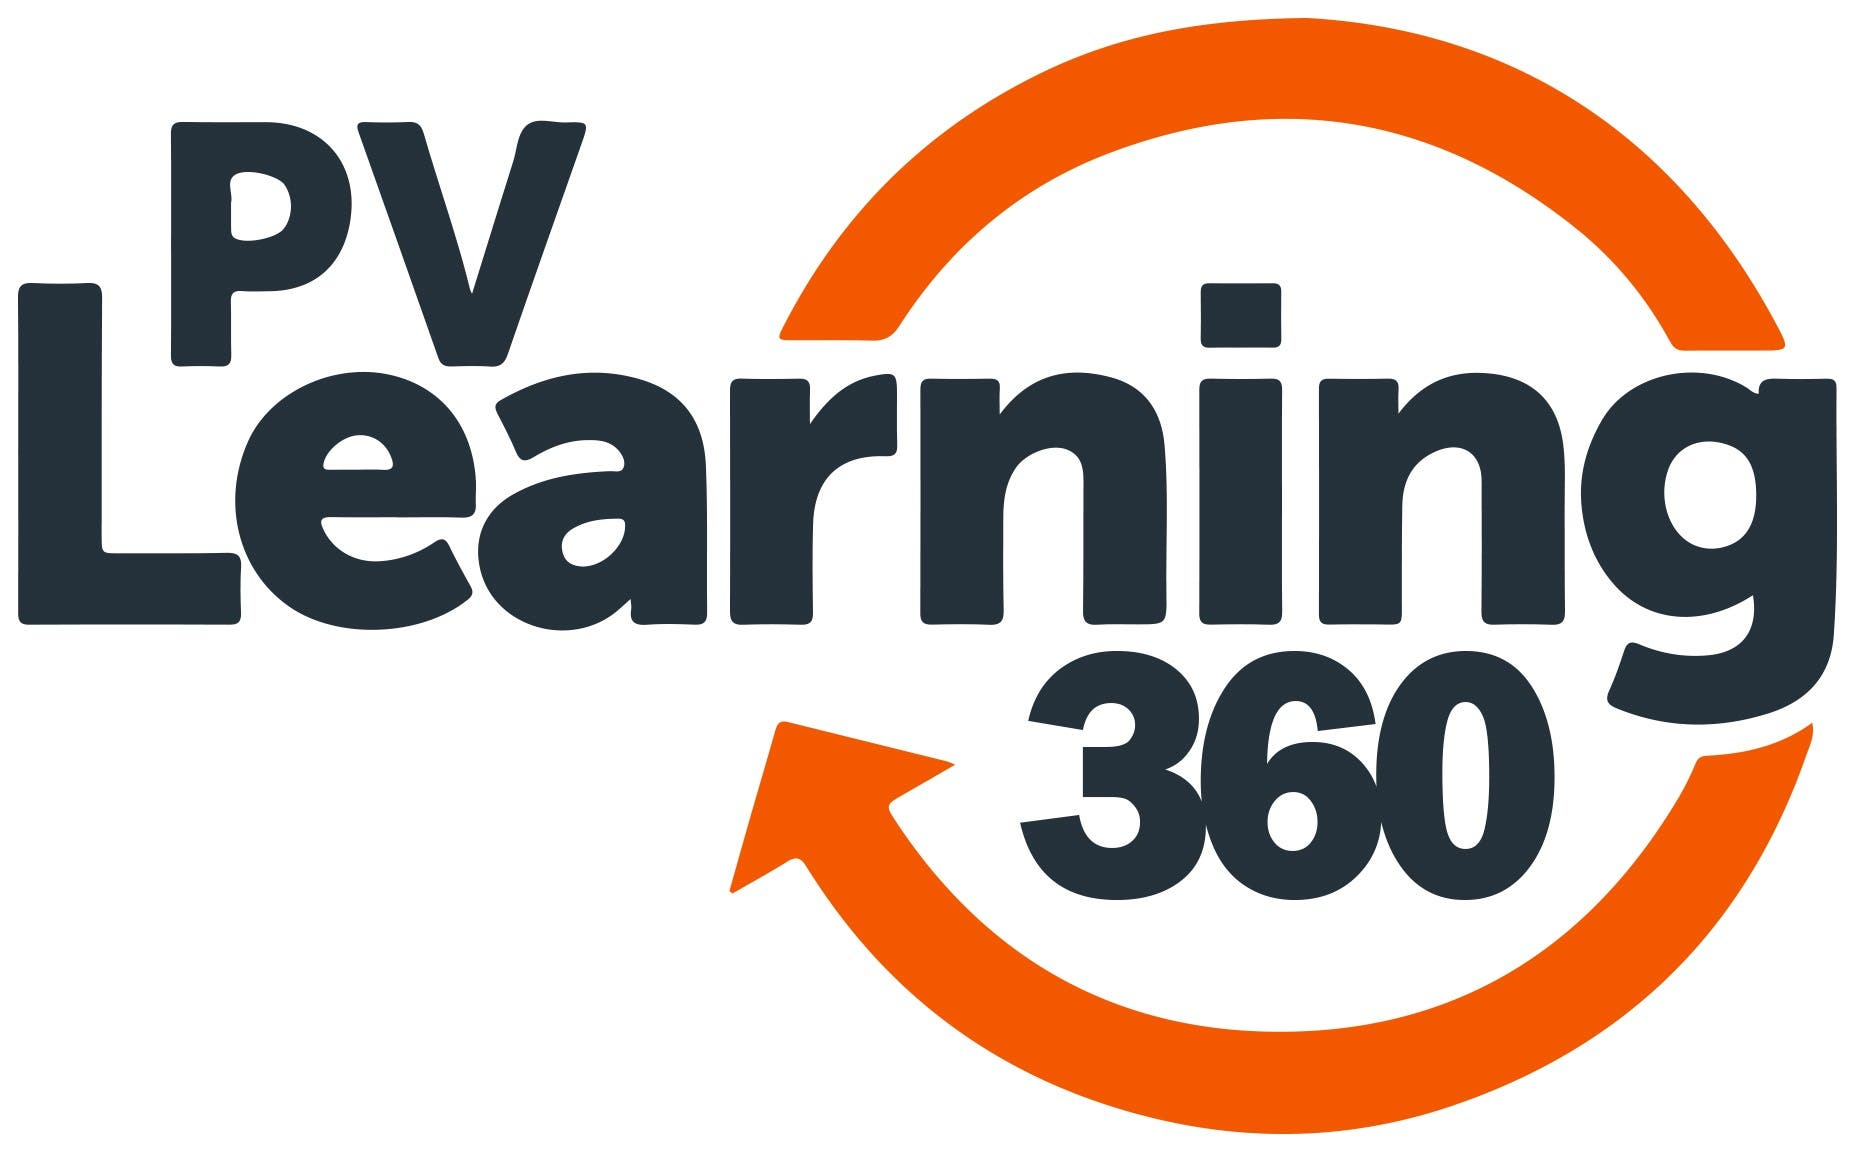 PV Learning 360